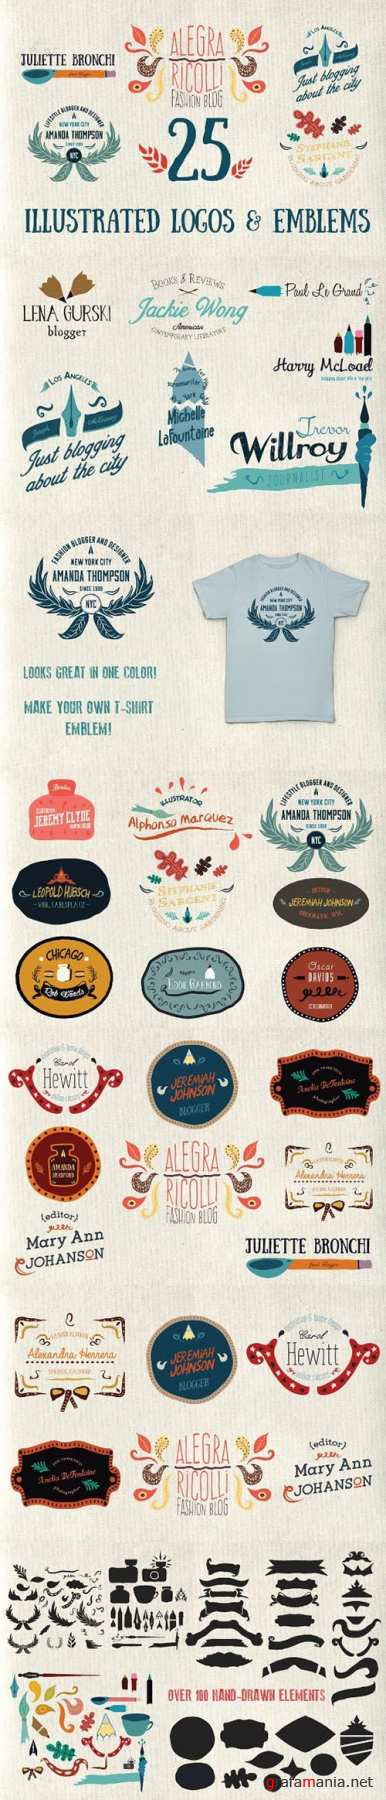 25 Illustrated logos and emblems